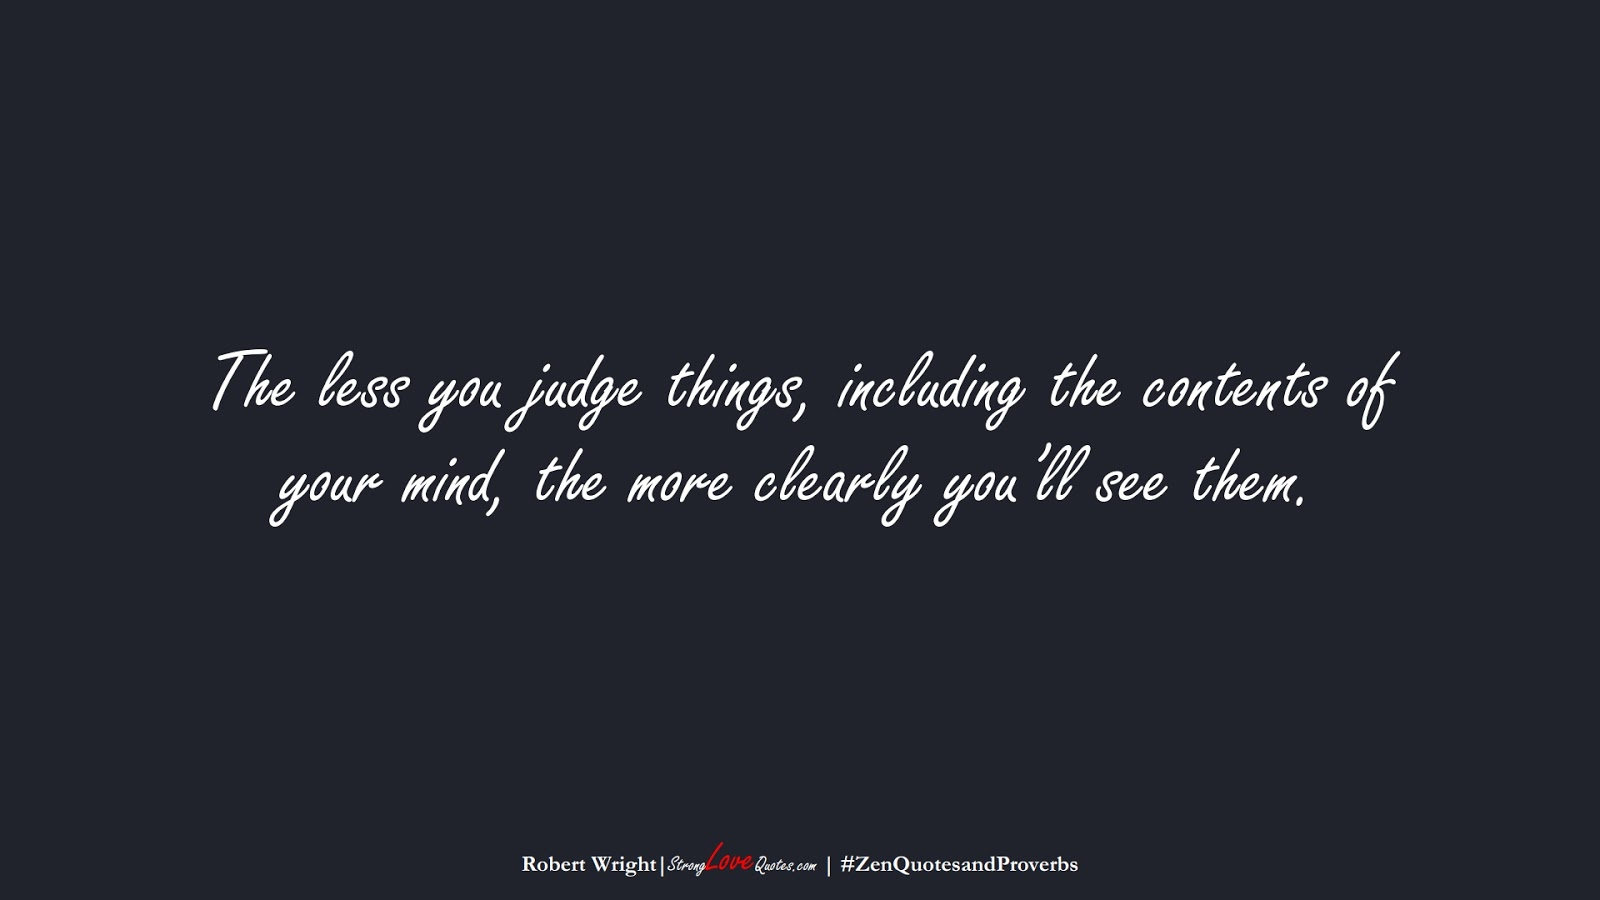 The less you judge things, including the contents of your mind, the more clearly you'll see them. (Robert Wright);  #ZenQuotesandProverbs